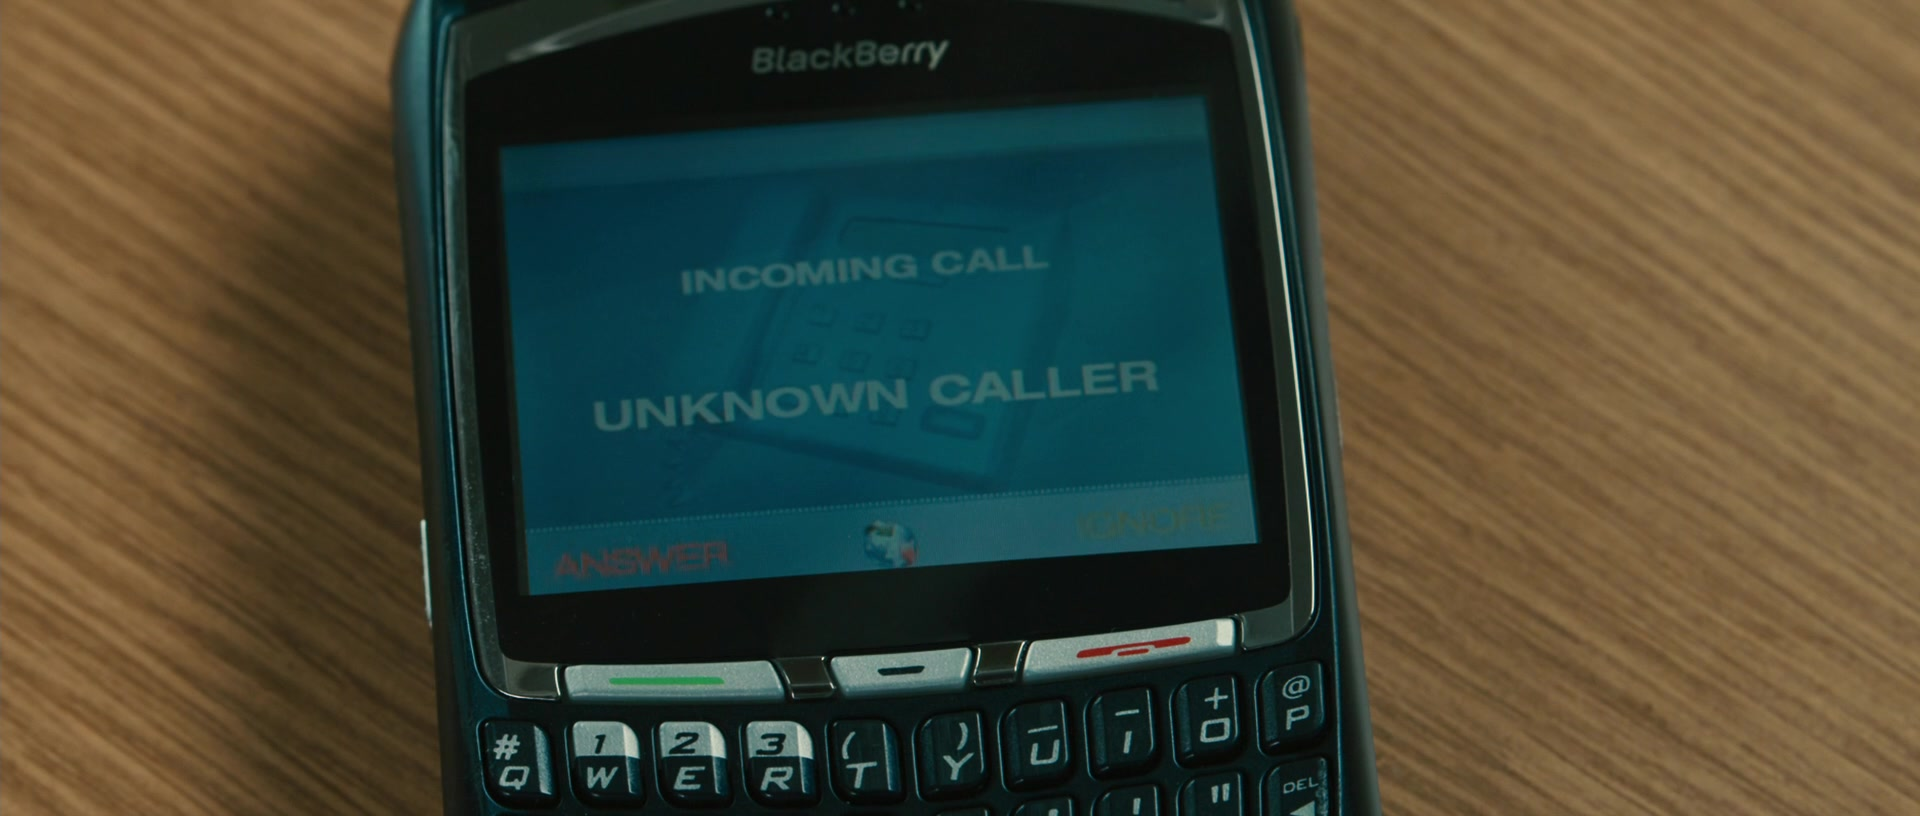 Blackberry Phone Used By Kevin Spacey In Casino Jack 2010